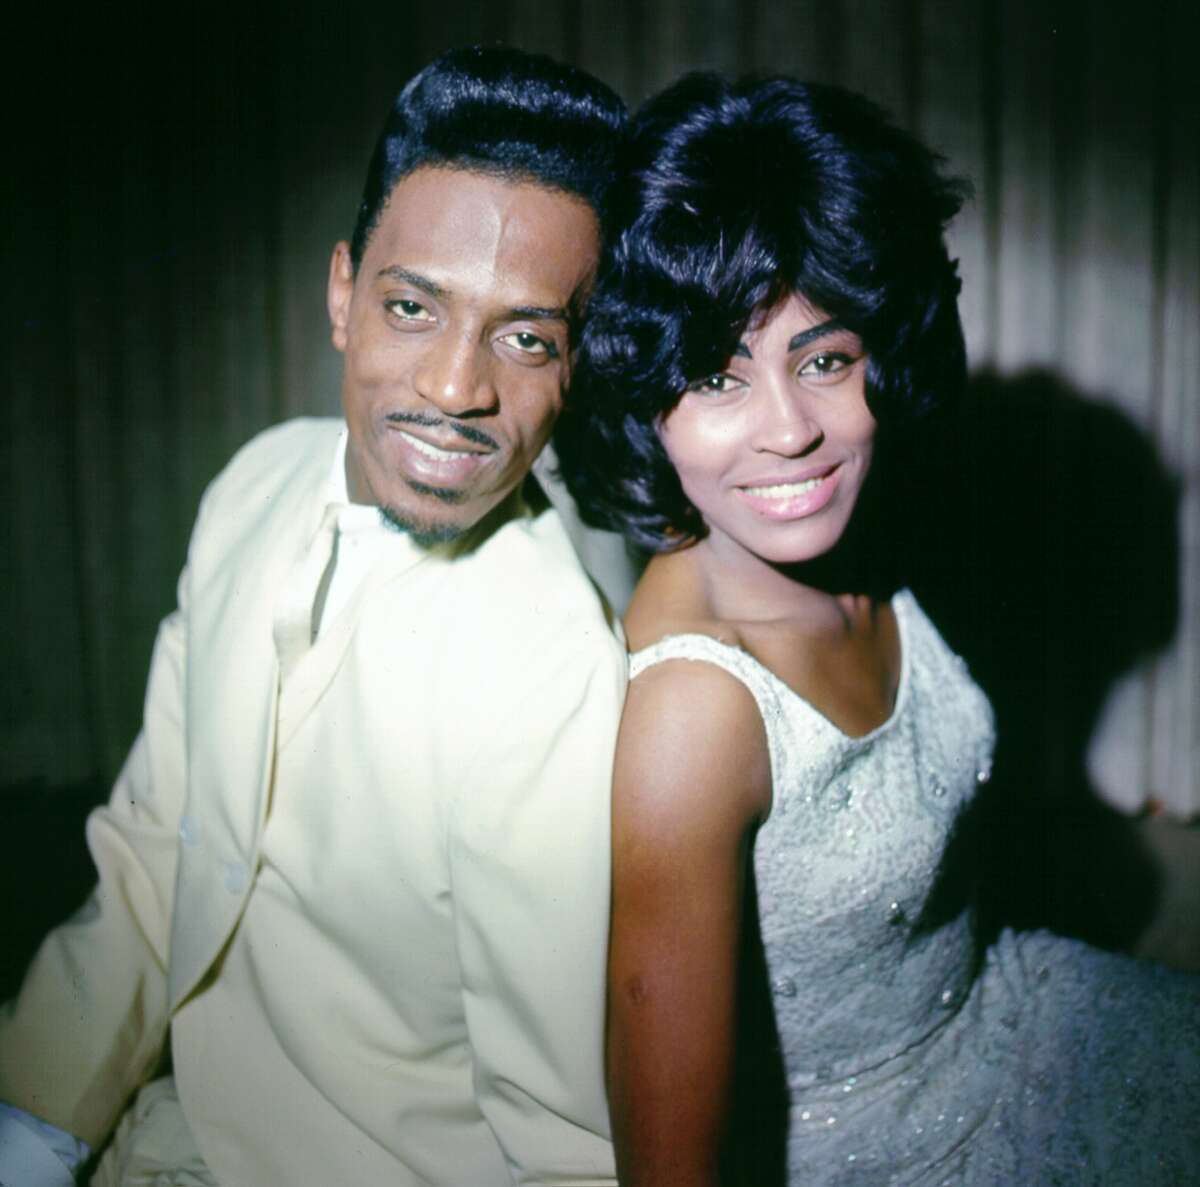 Circa 1963: Husband-and-wife R&B duo Ike & Tina Turner pose for a portrait. (Photo by Michael Ochs Archives/Getty Images)